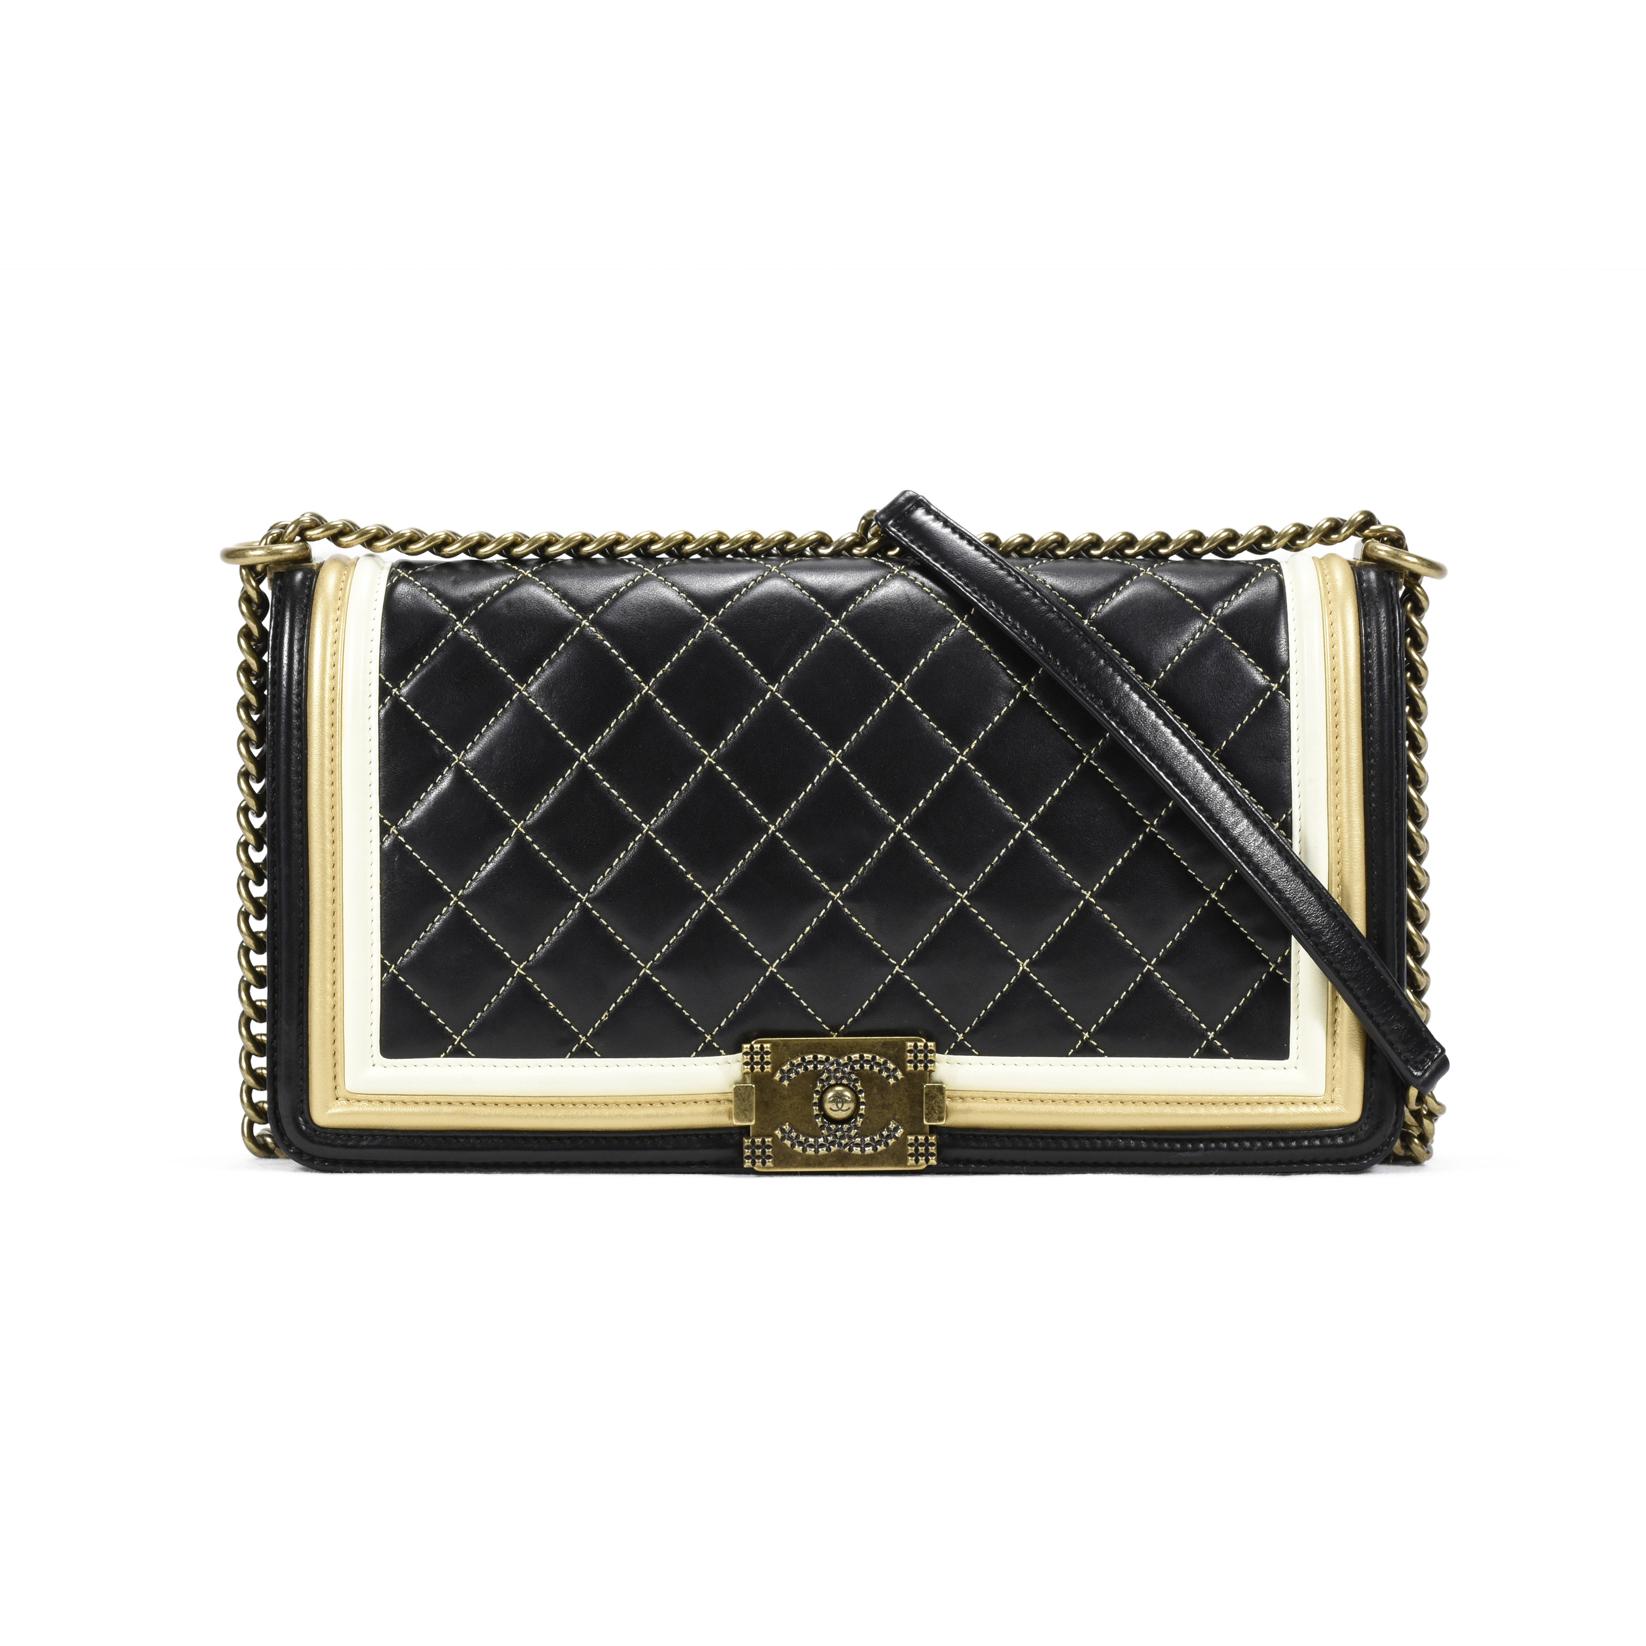 496e2ad3f88b Authentic Second Hand Chanel Chateau Boy Medium Flap Bag (PSS-200-00865) |  THE FIFTH COLLECTION